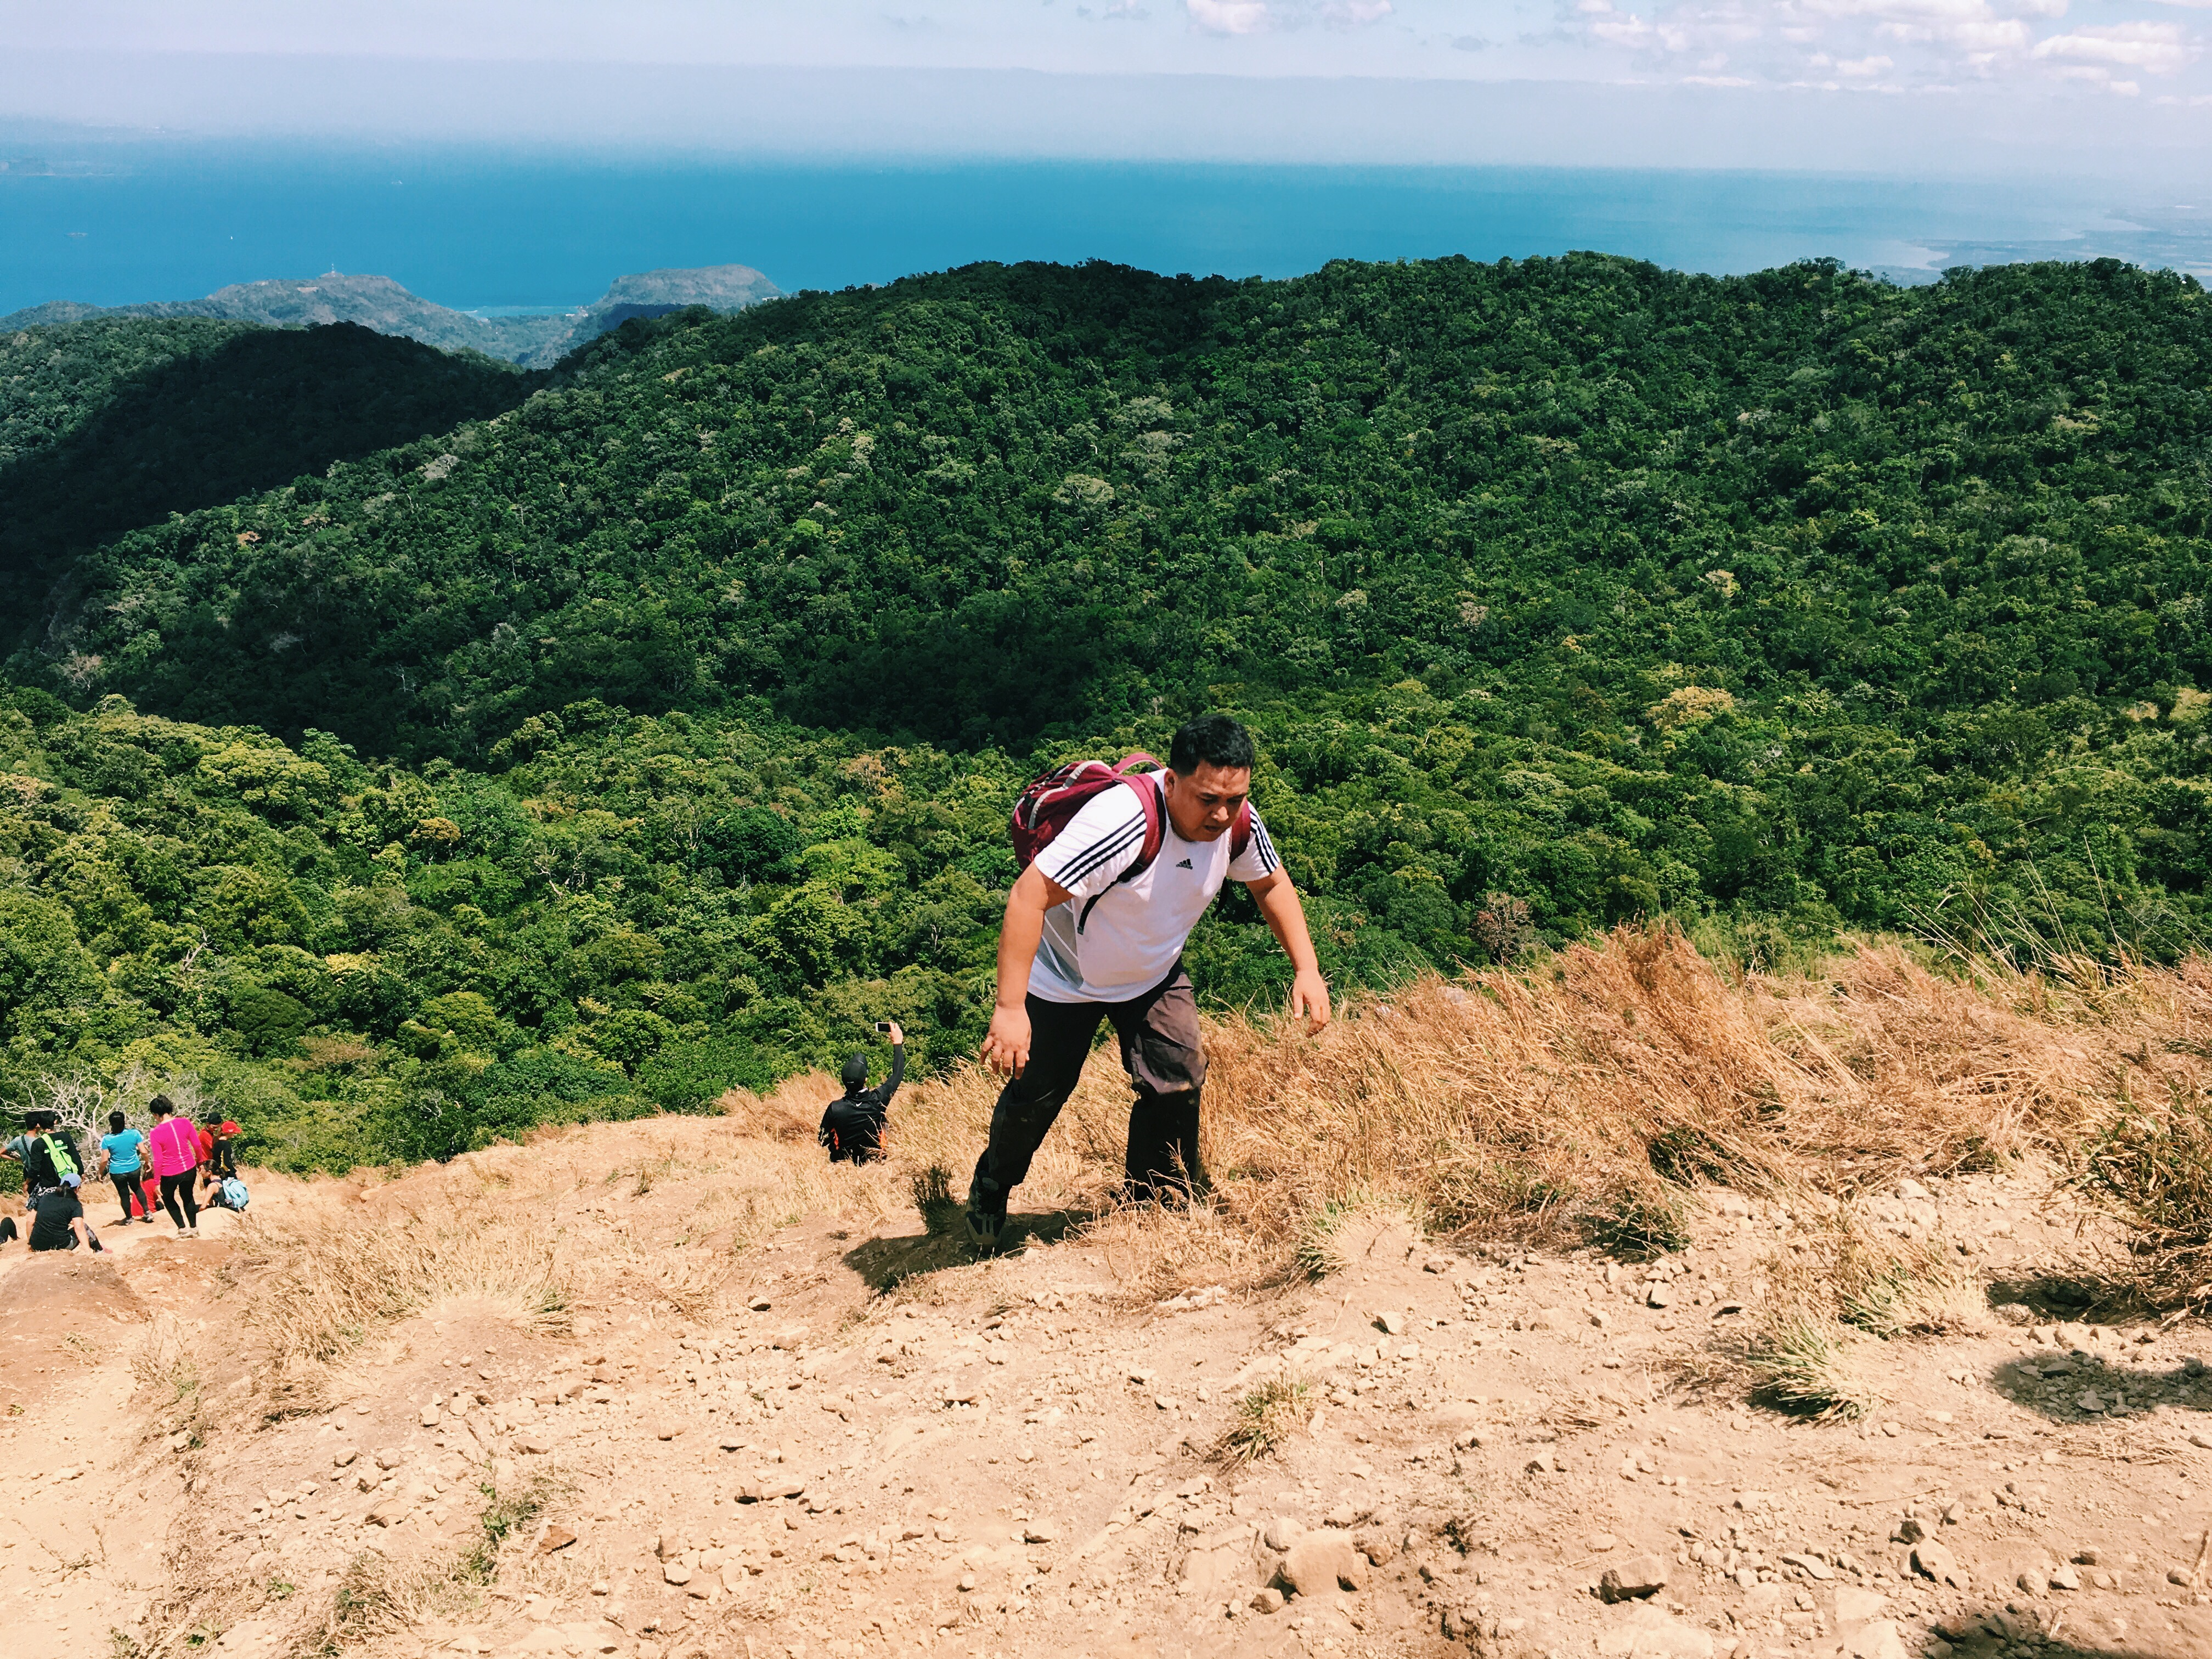 Jon successfully climbs Pico de Loro for the second time